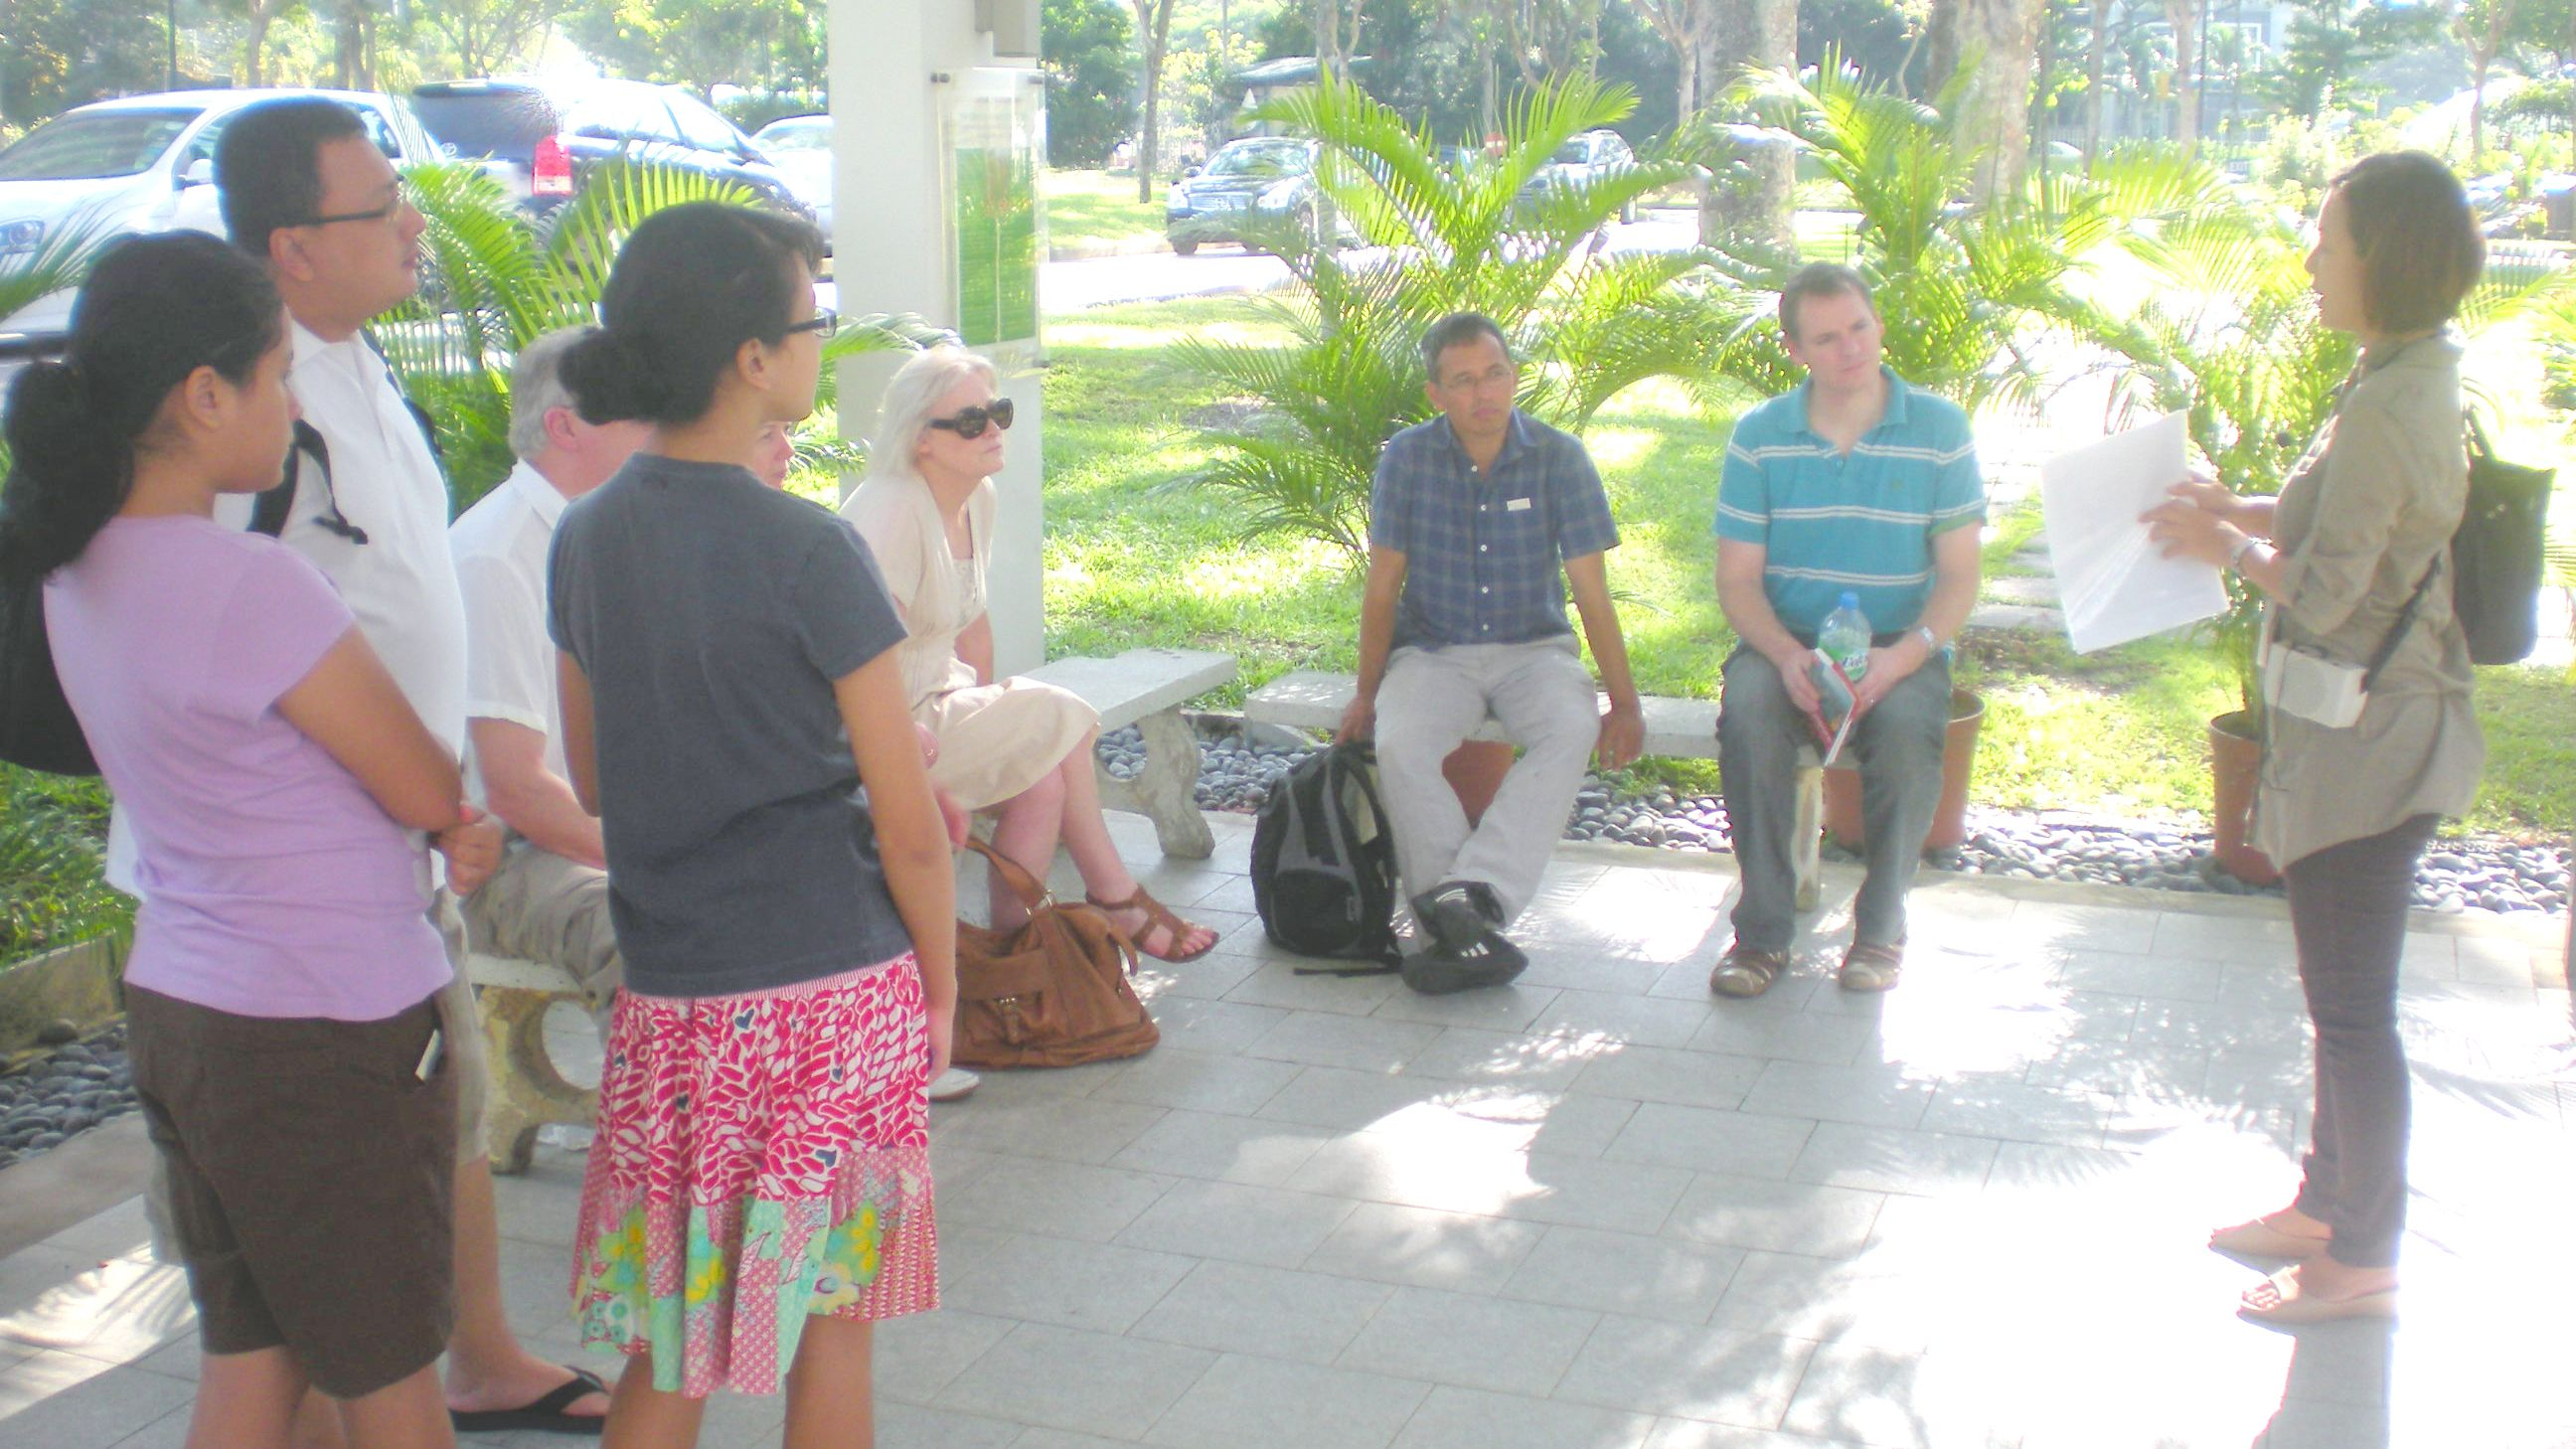 Tour guide talking to group in Singapore